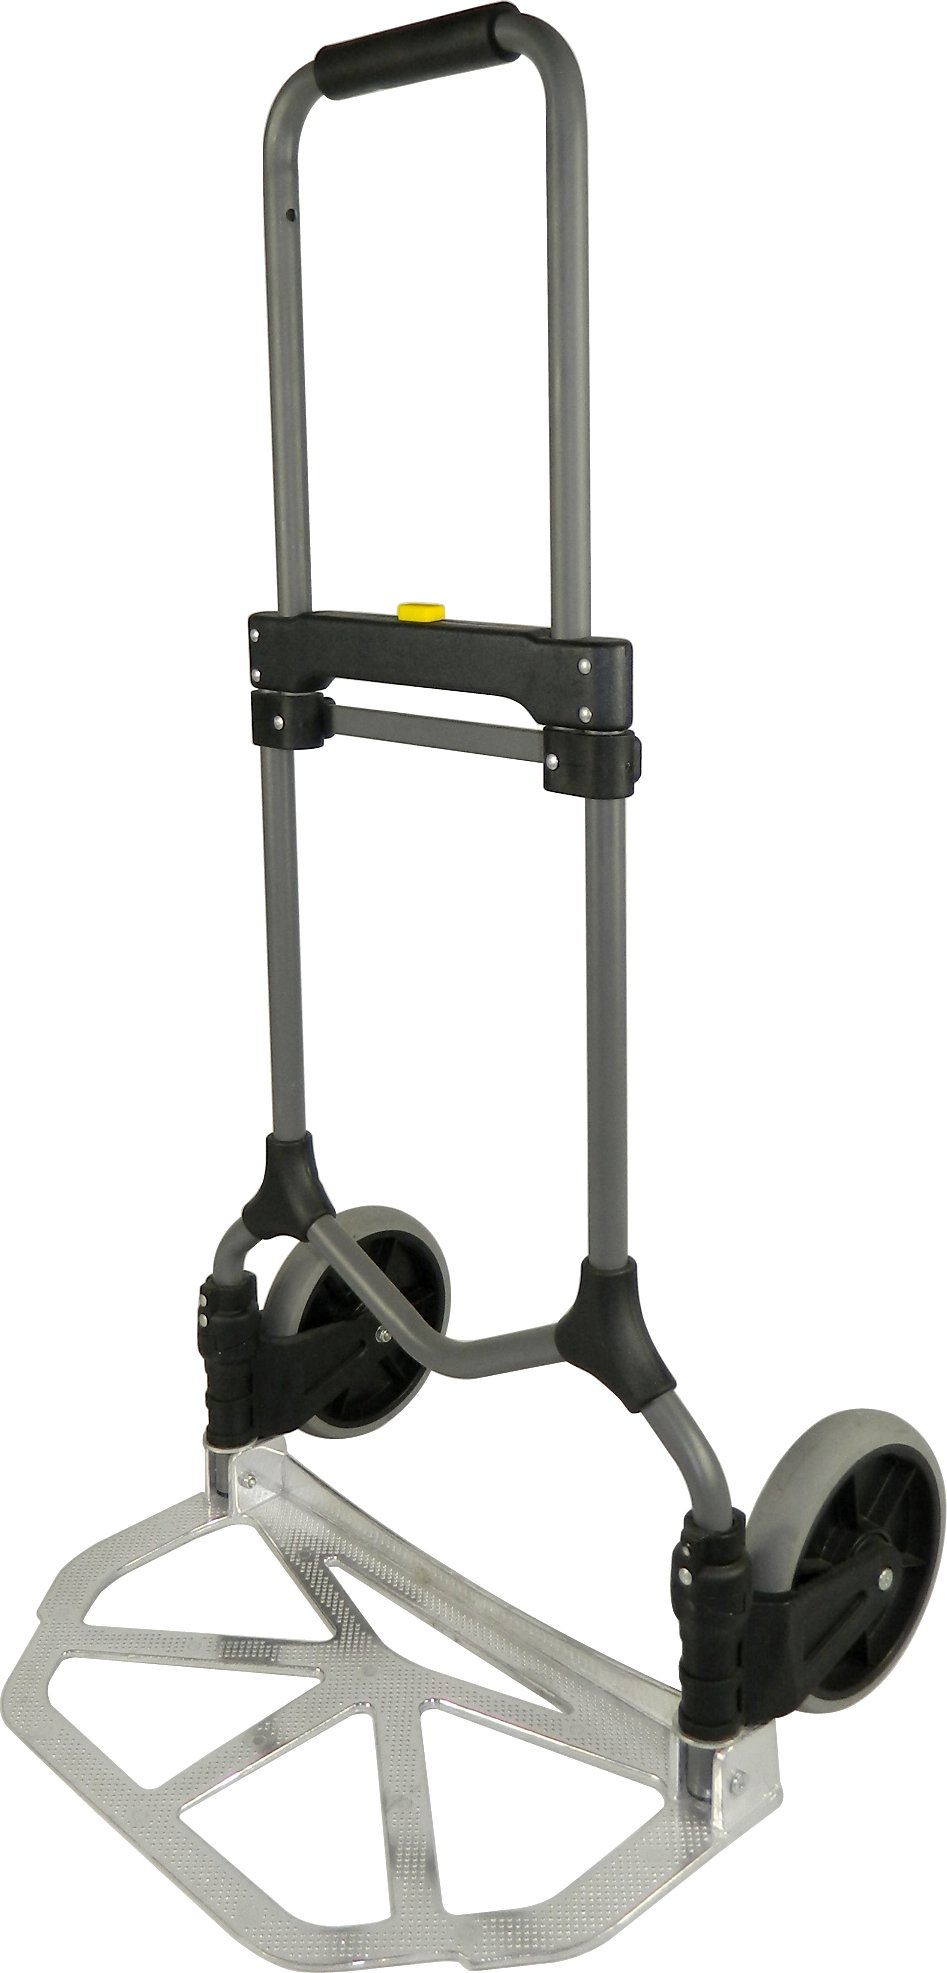 Welcom MC2S Magna Cart Elite 200 lb Capacity Folding Hand Truck, Silver, Frustration-Free Packaging